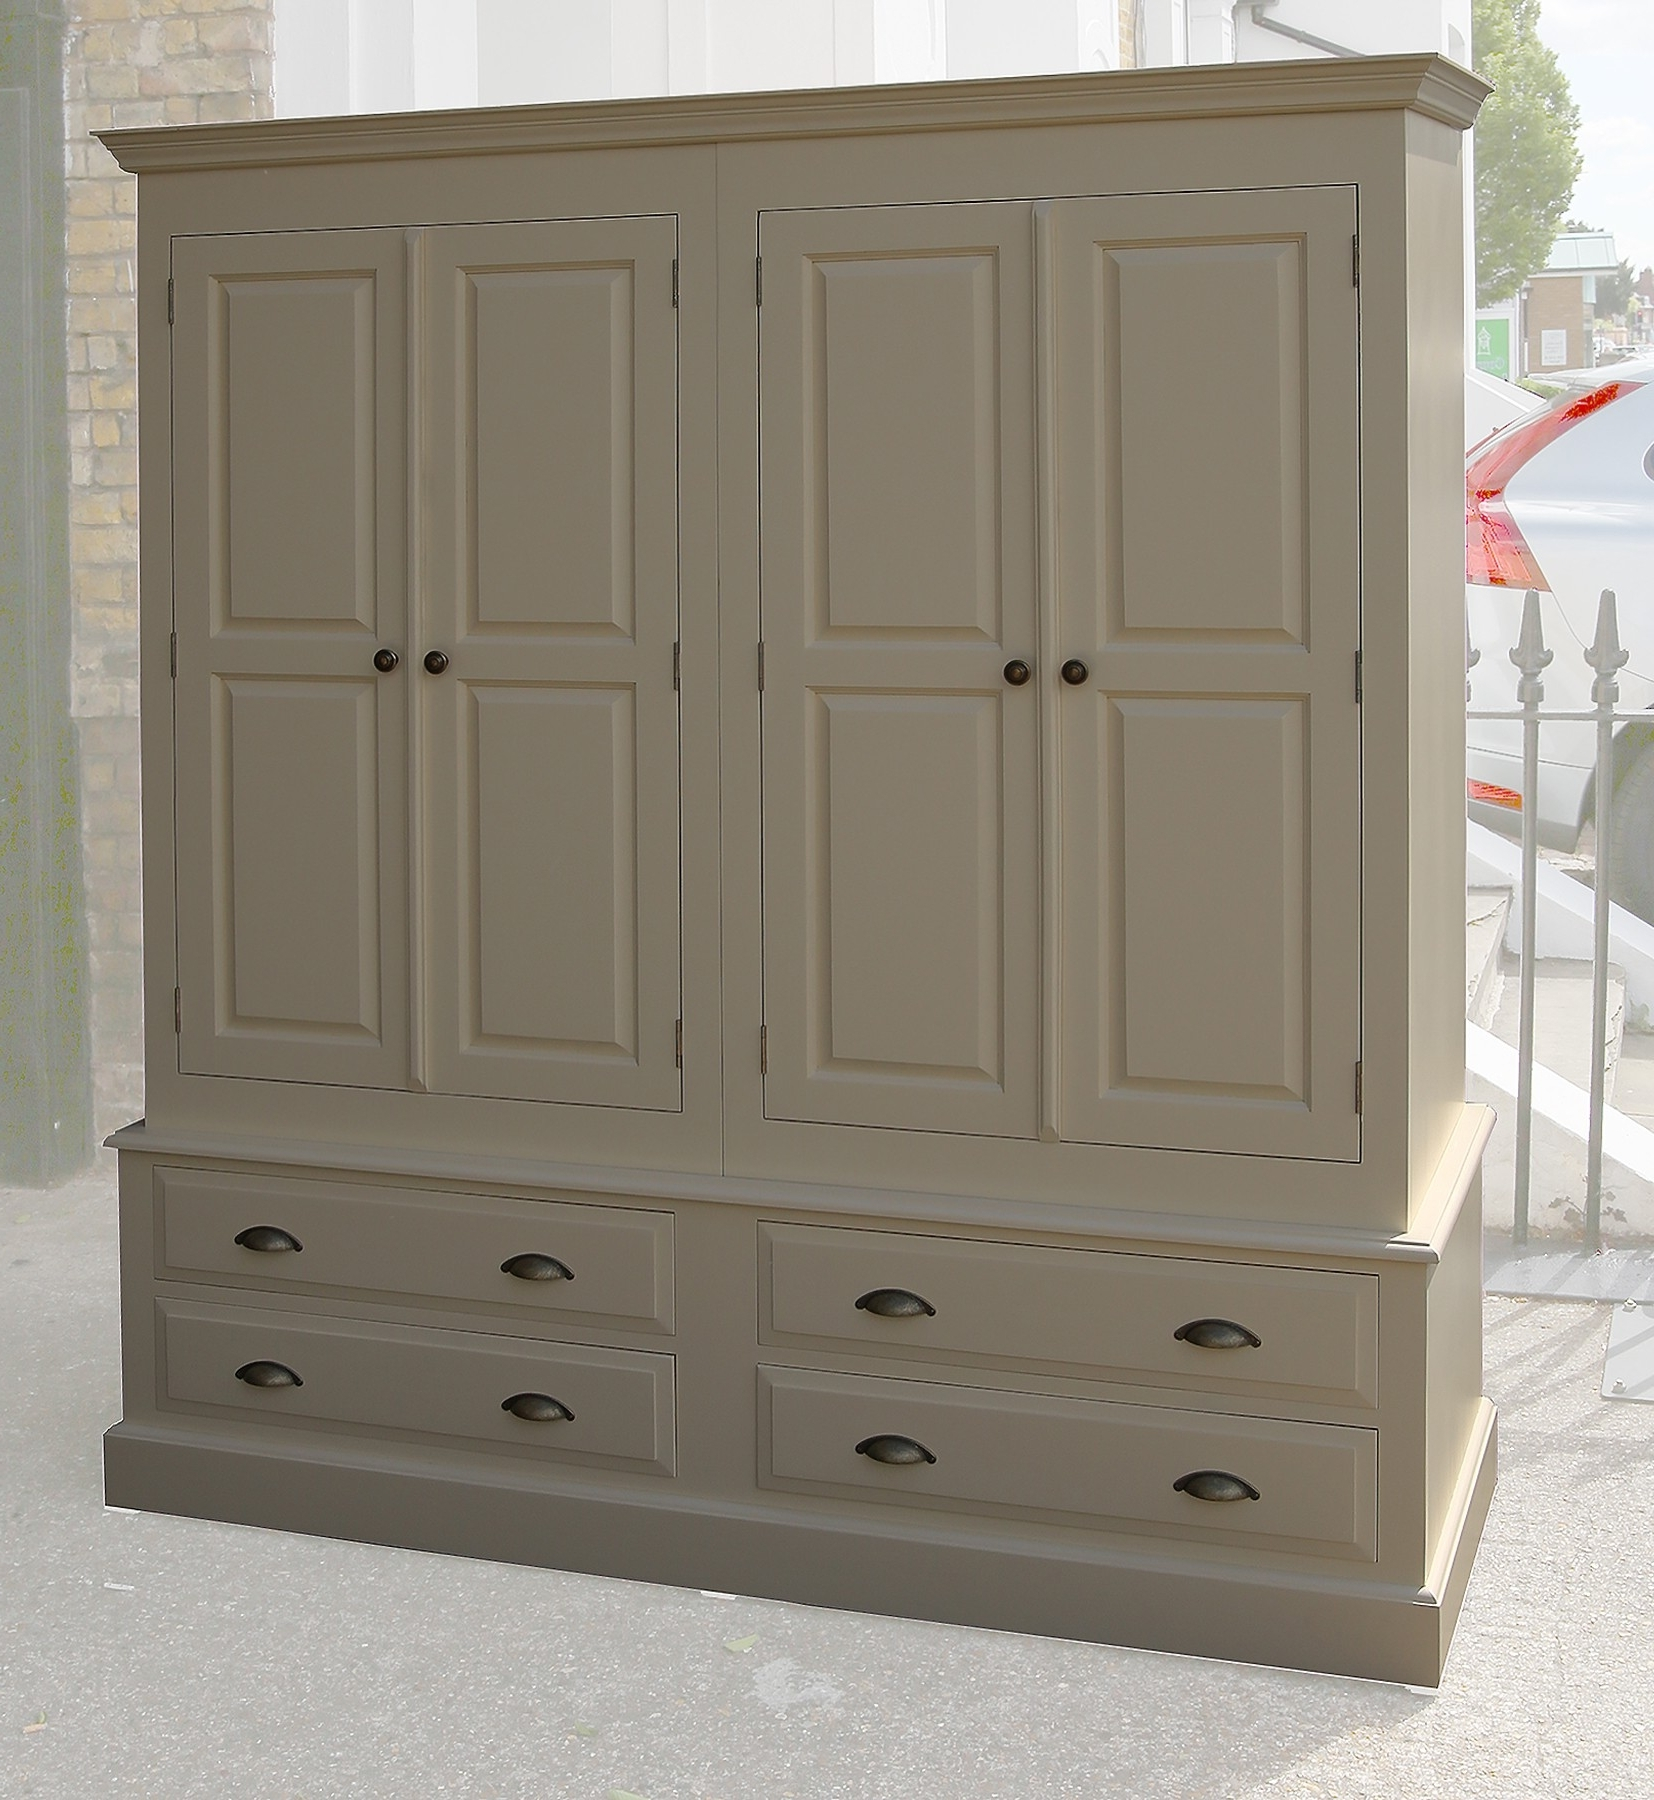 Most Recent Wardrobes With Drawers Short Wardrobe Cheap Kids Solid Pine White Throughout White Pine Wardrobes (View 6 of 15)